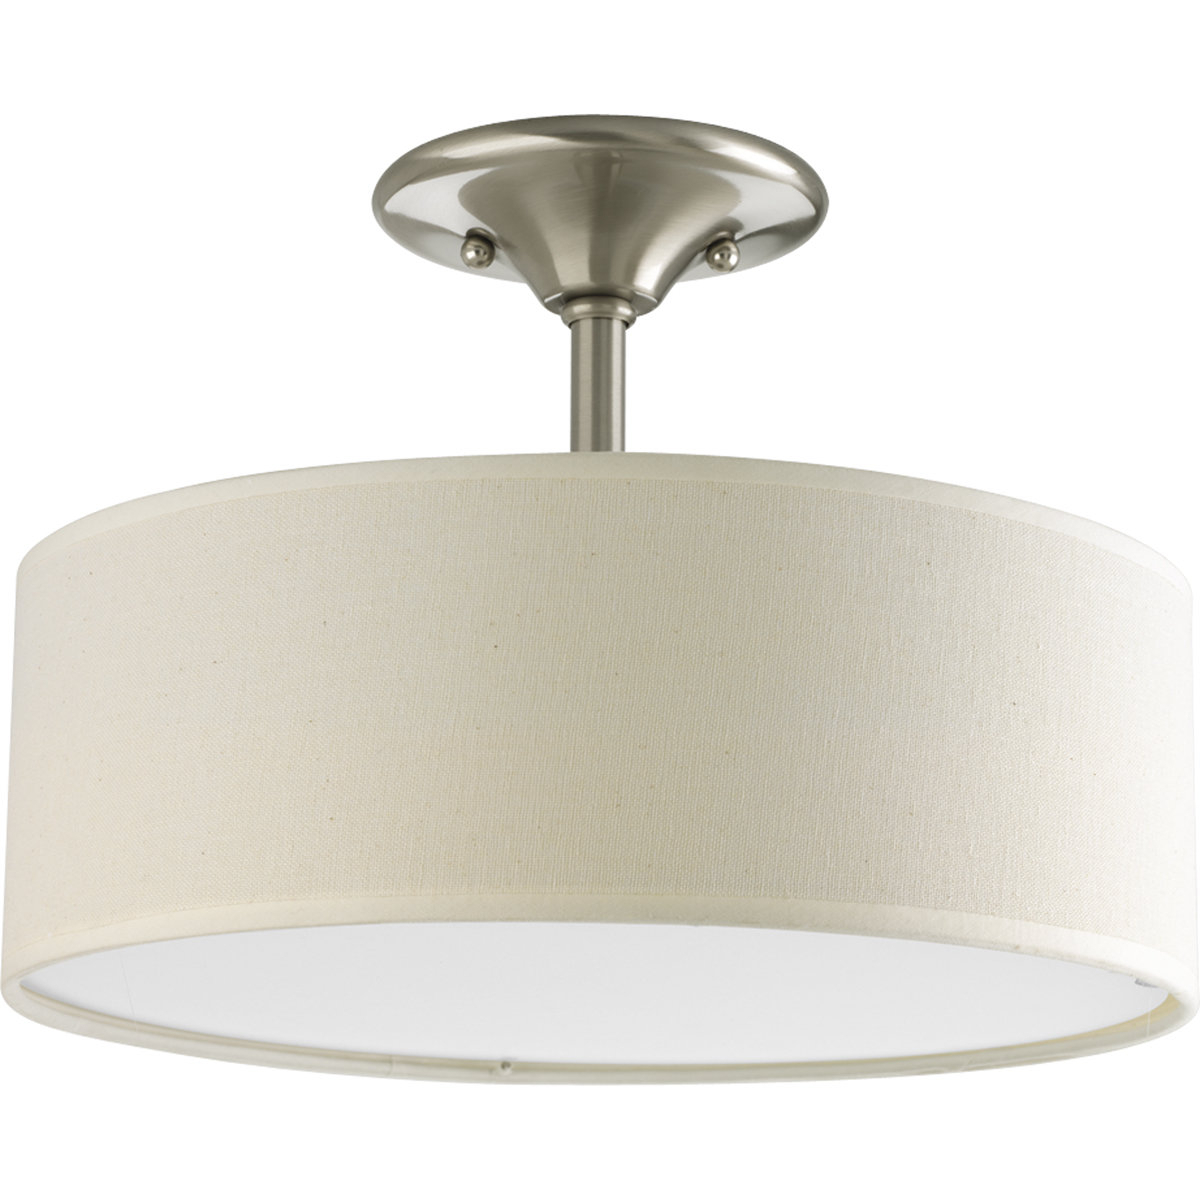 Kasey 3 Light Single Drum Pendants Throughout Preferred Modern & Contemporary Drum Shade Pendant (View 9 of 20)